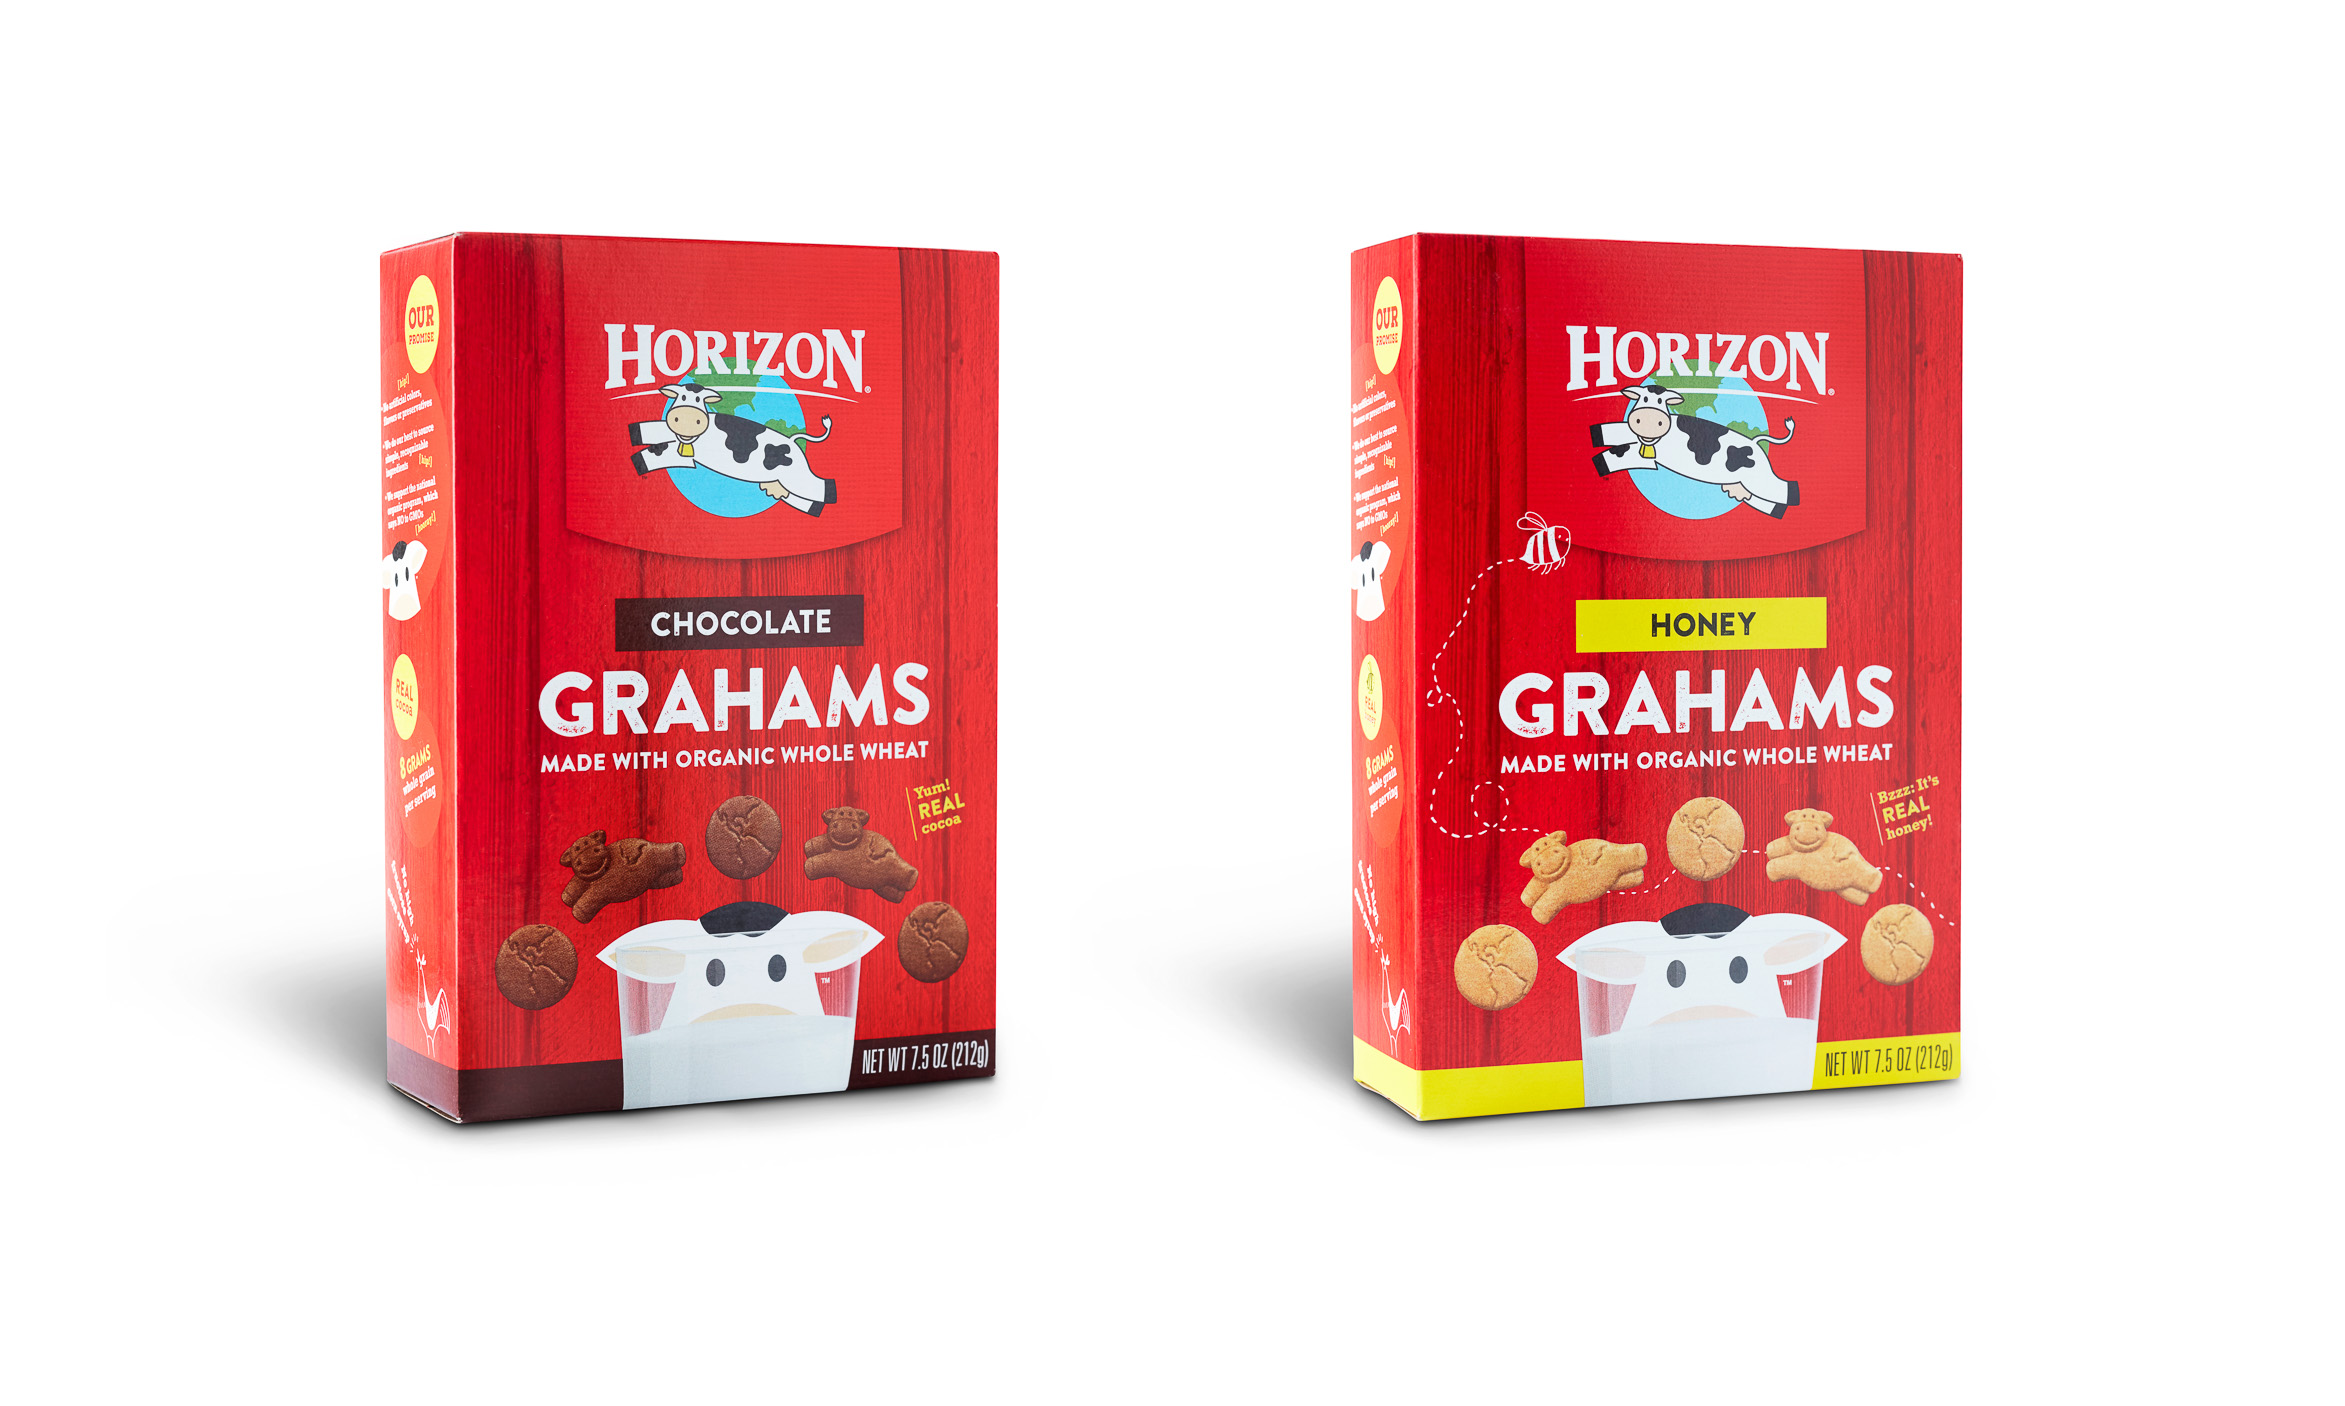 09_HorizonPackaging_Grahams-46